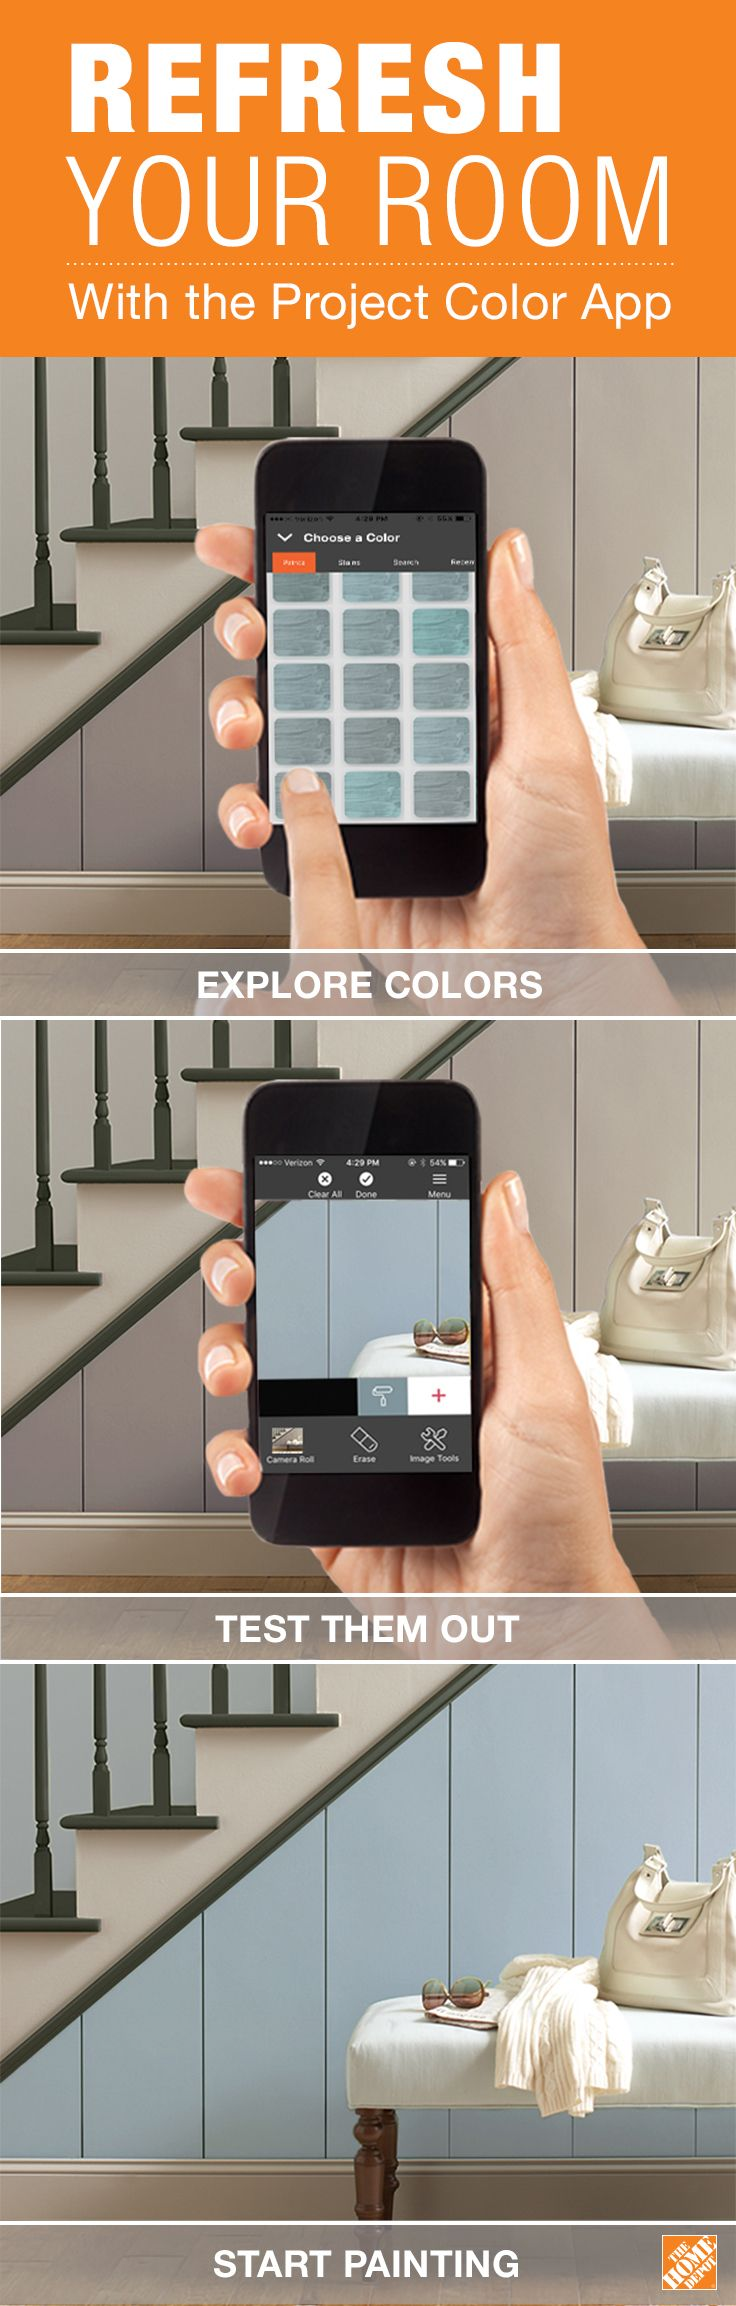 The Project Color App By The Home Depot Allows You To Try Out Paint Colors Virtually